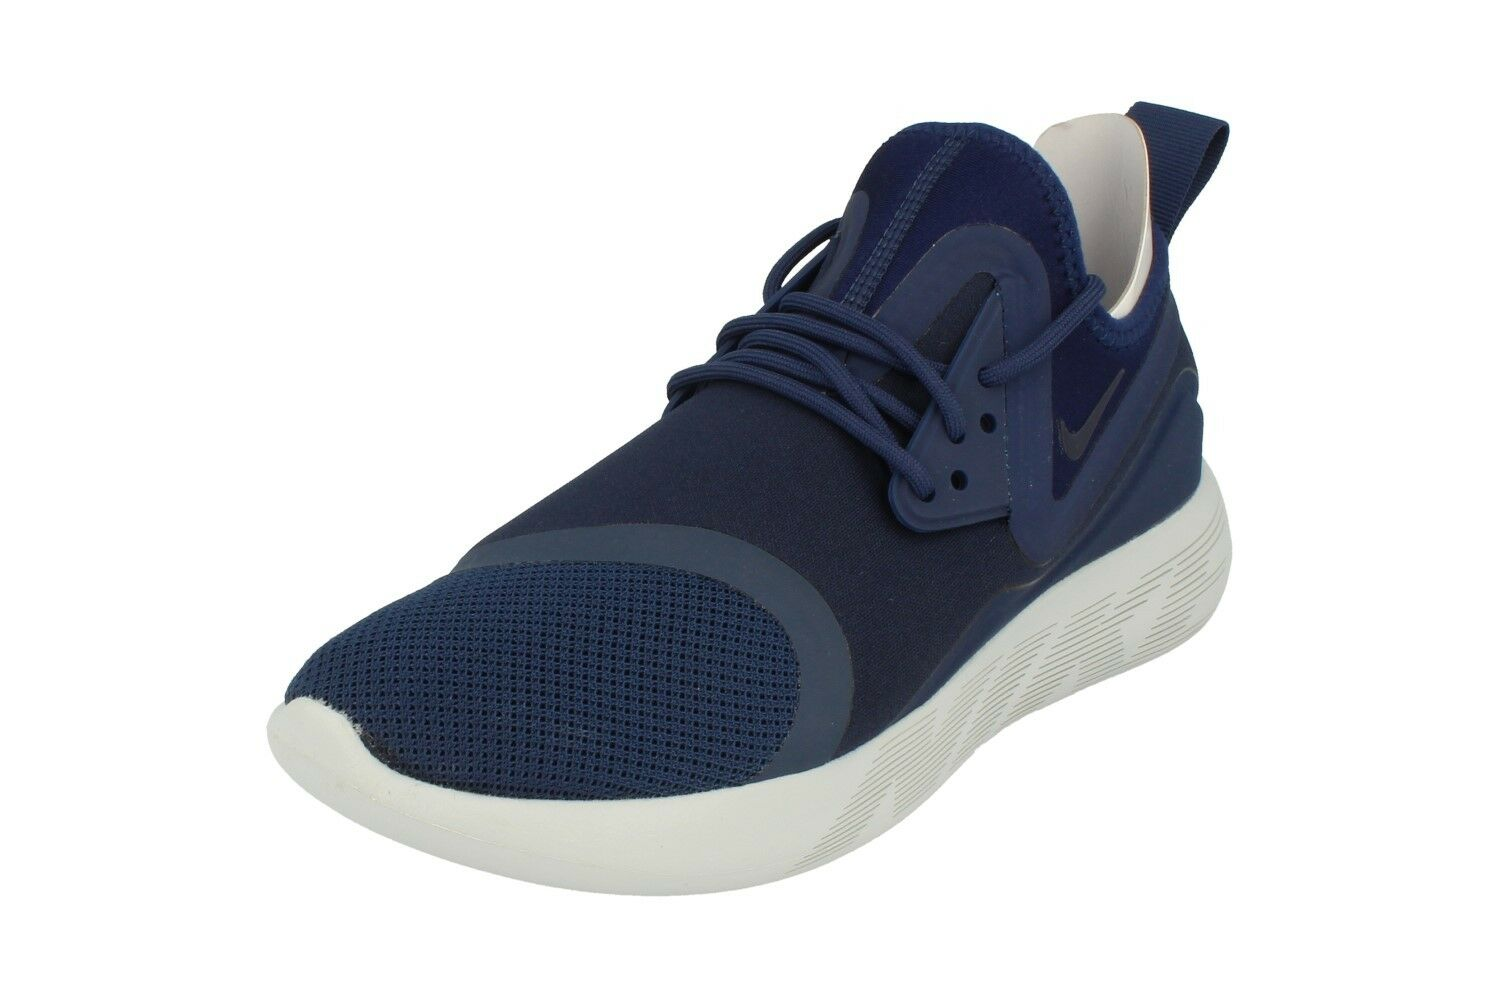 Nike Lunarcharge Essential Mens Running Trainers 923619 Sneakers Shoes 401